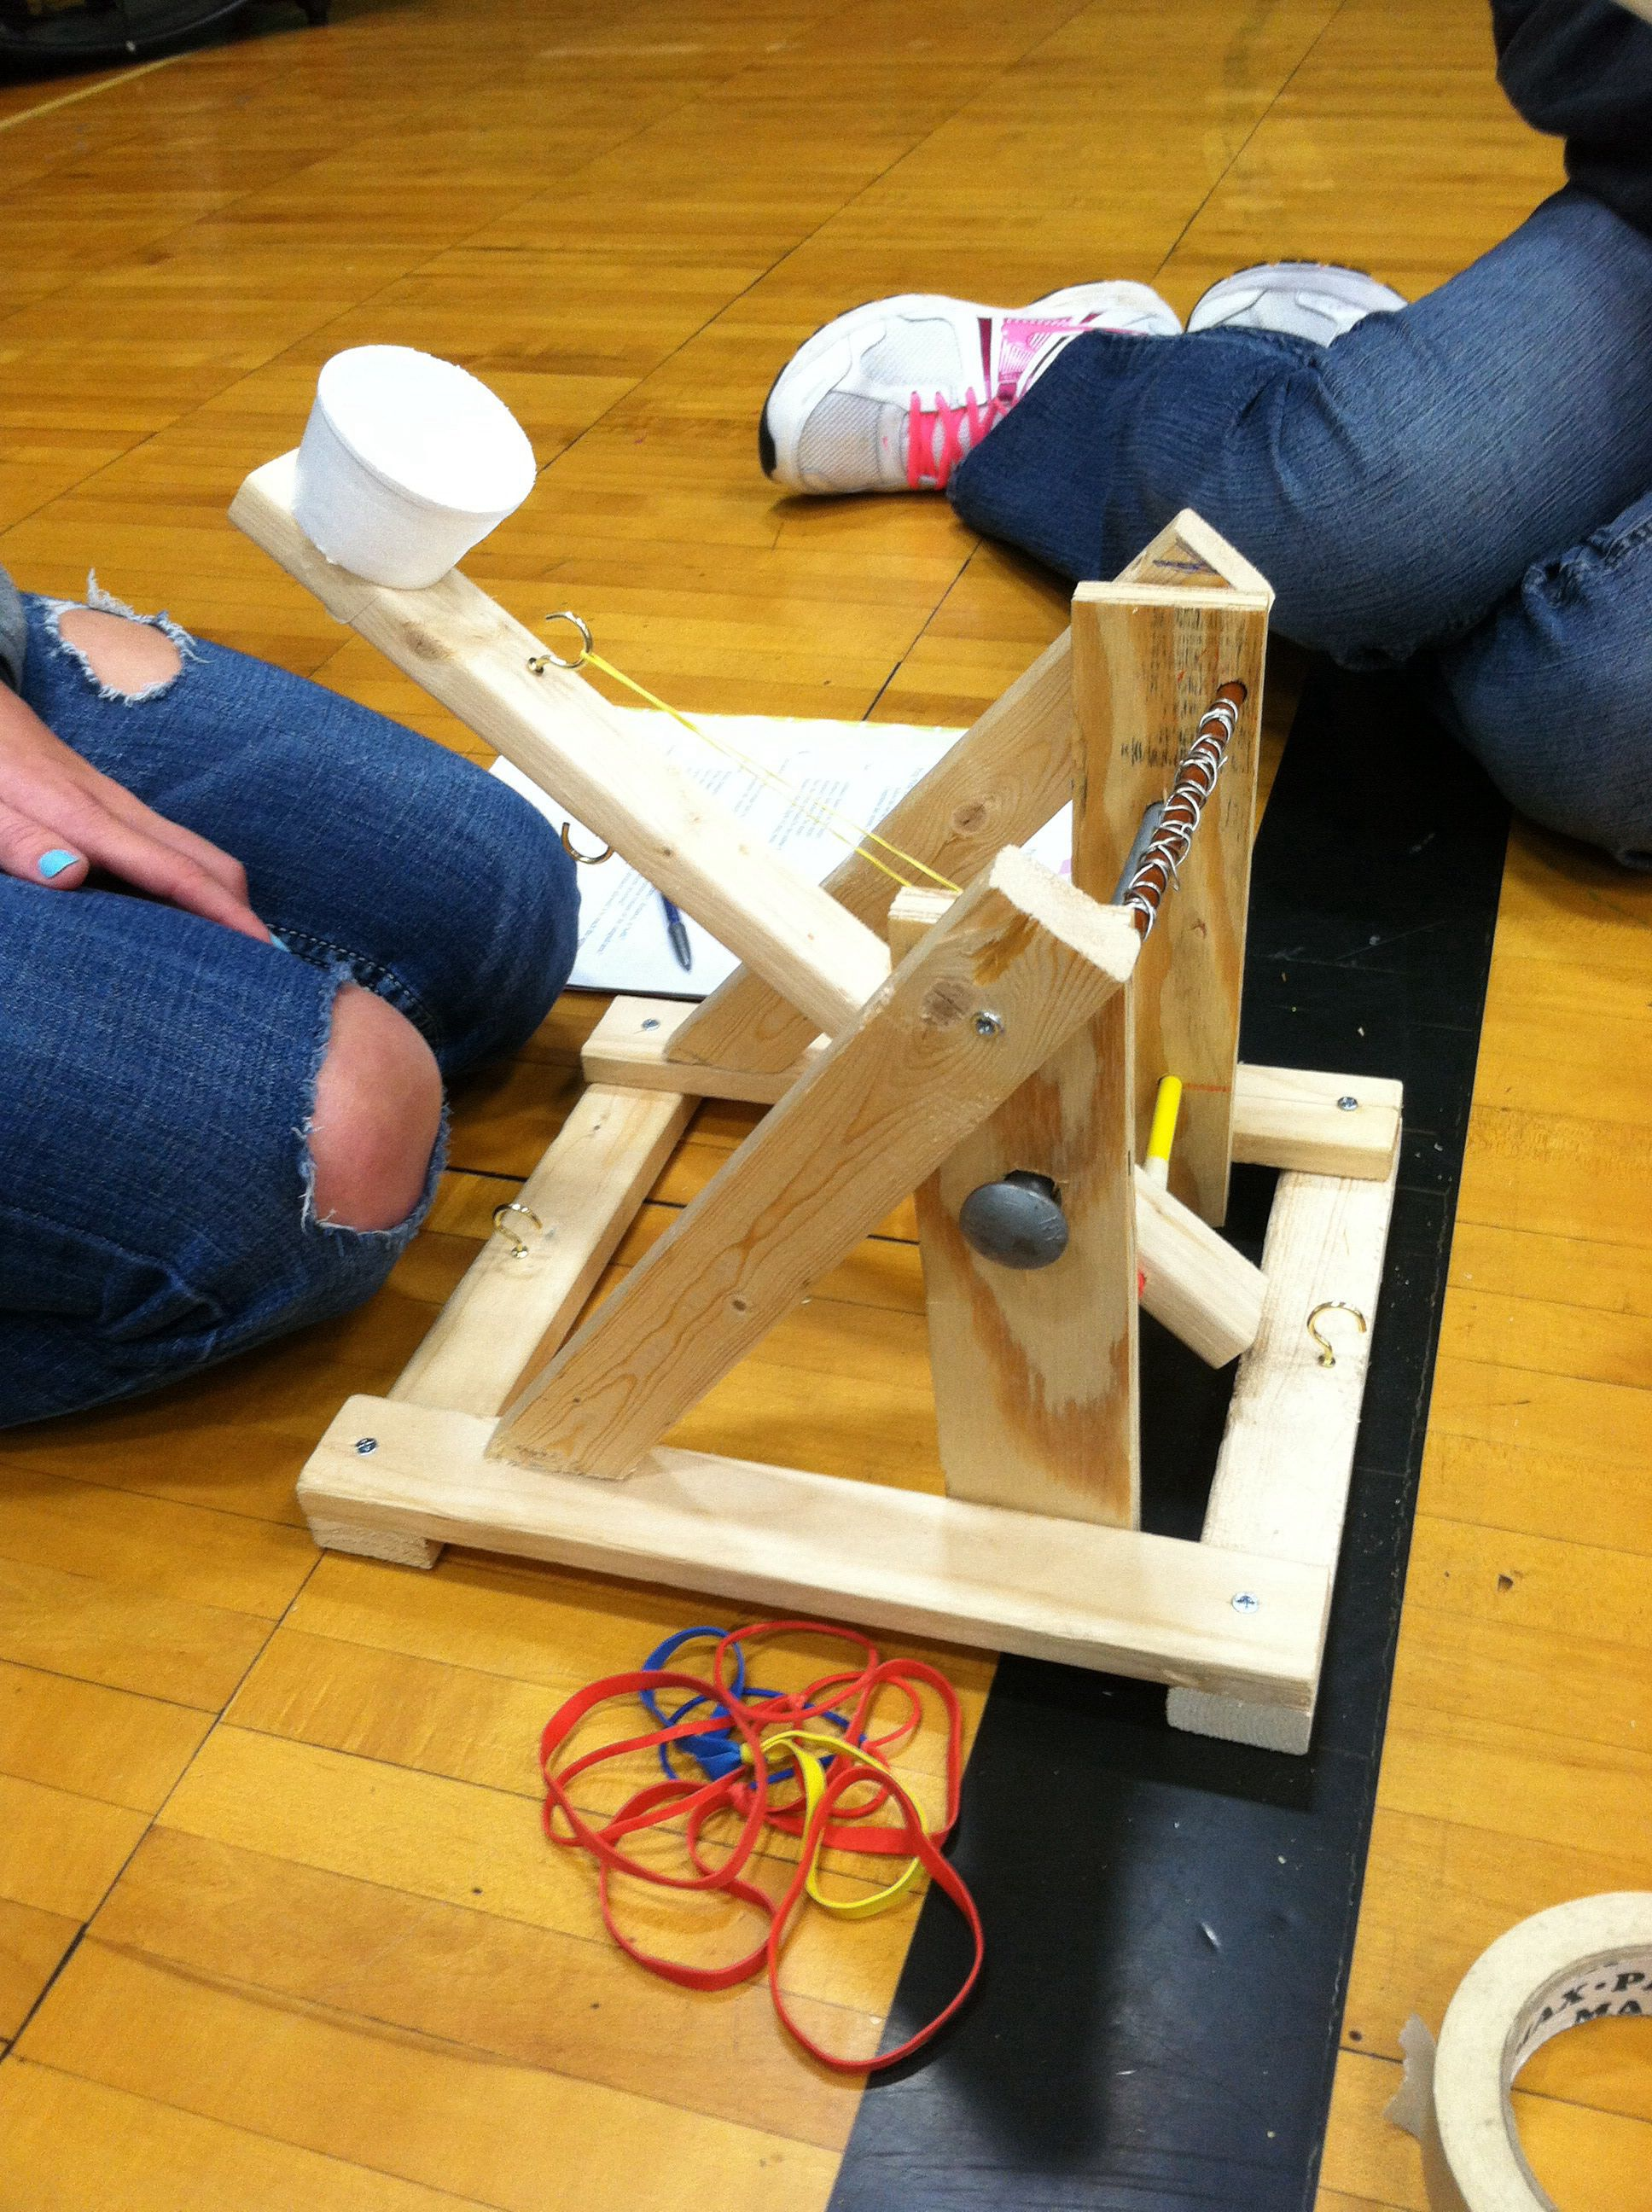 Catapult Simple machine projects, Catapult project